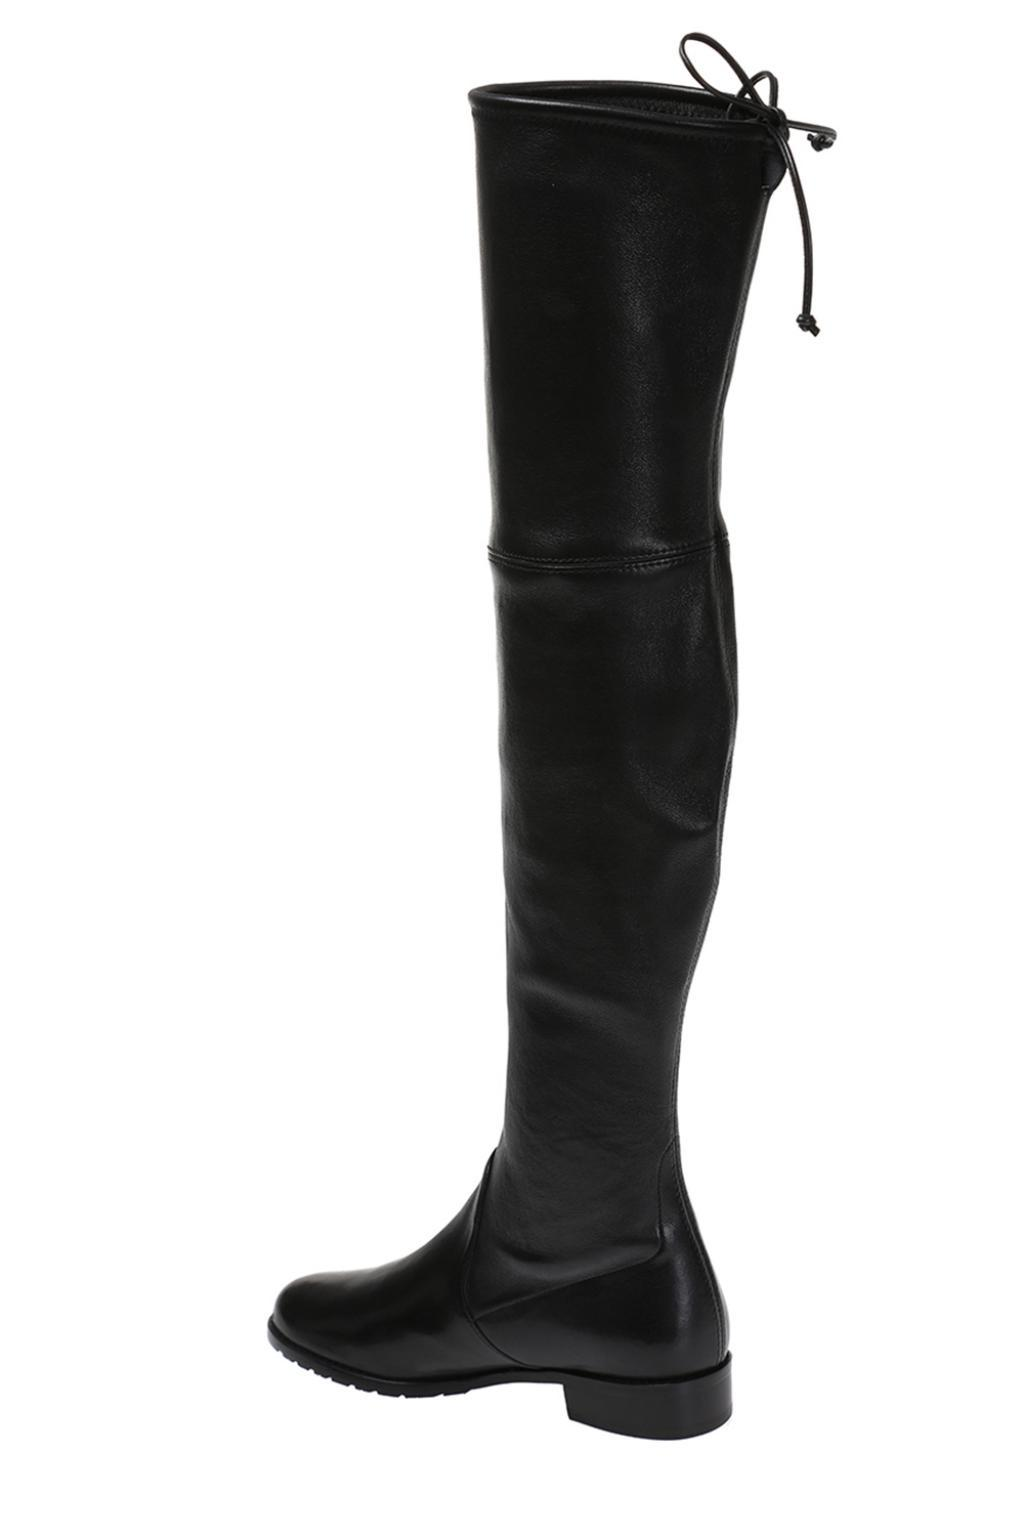 Stuart Weitzman 'lowland' Tied-up Leather Boots in Black